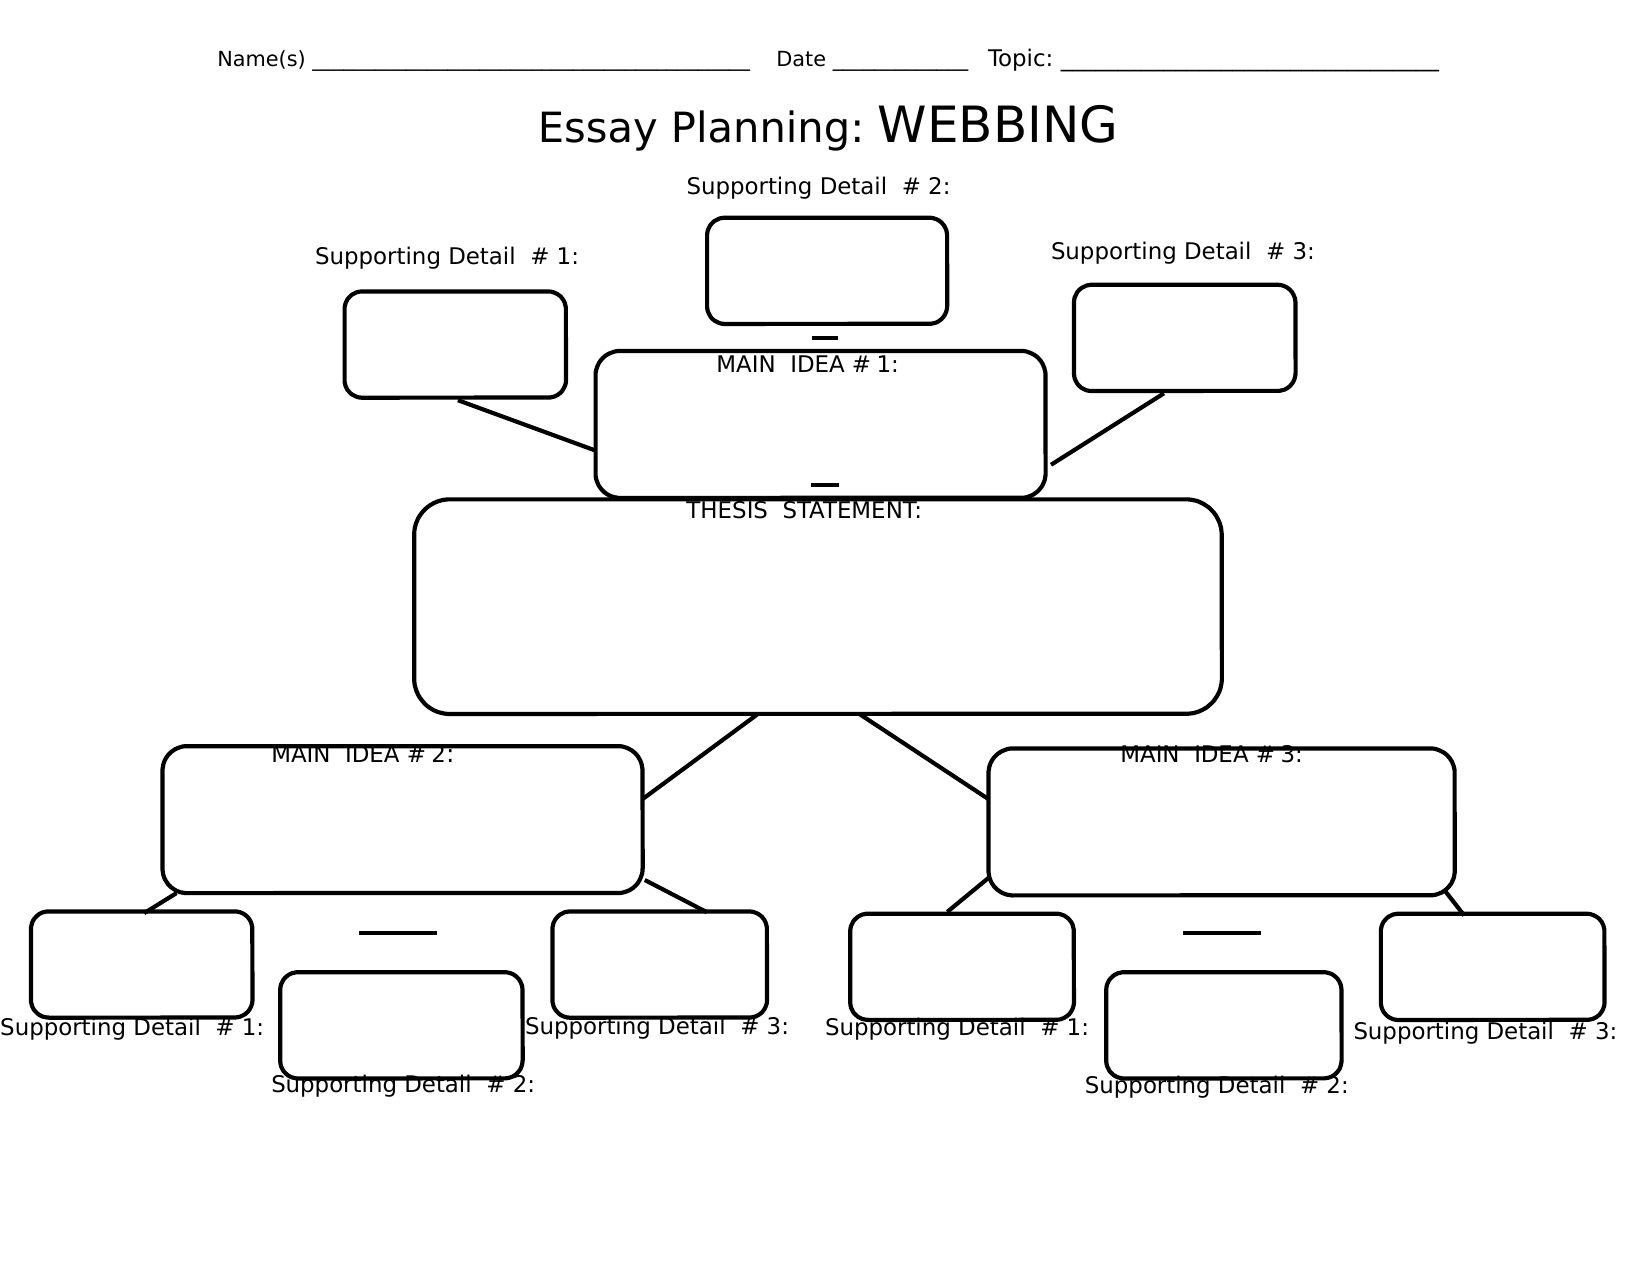 002 Essay Example Planning Sheet 48f818829e89 Original 1 Breathtaking Informative Printable Full